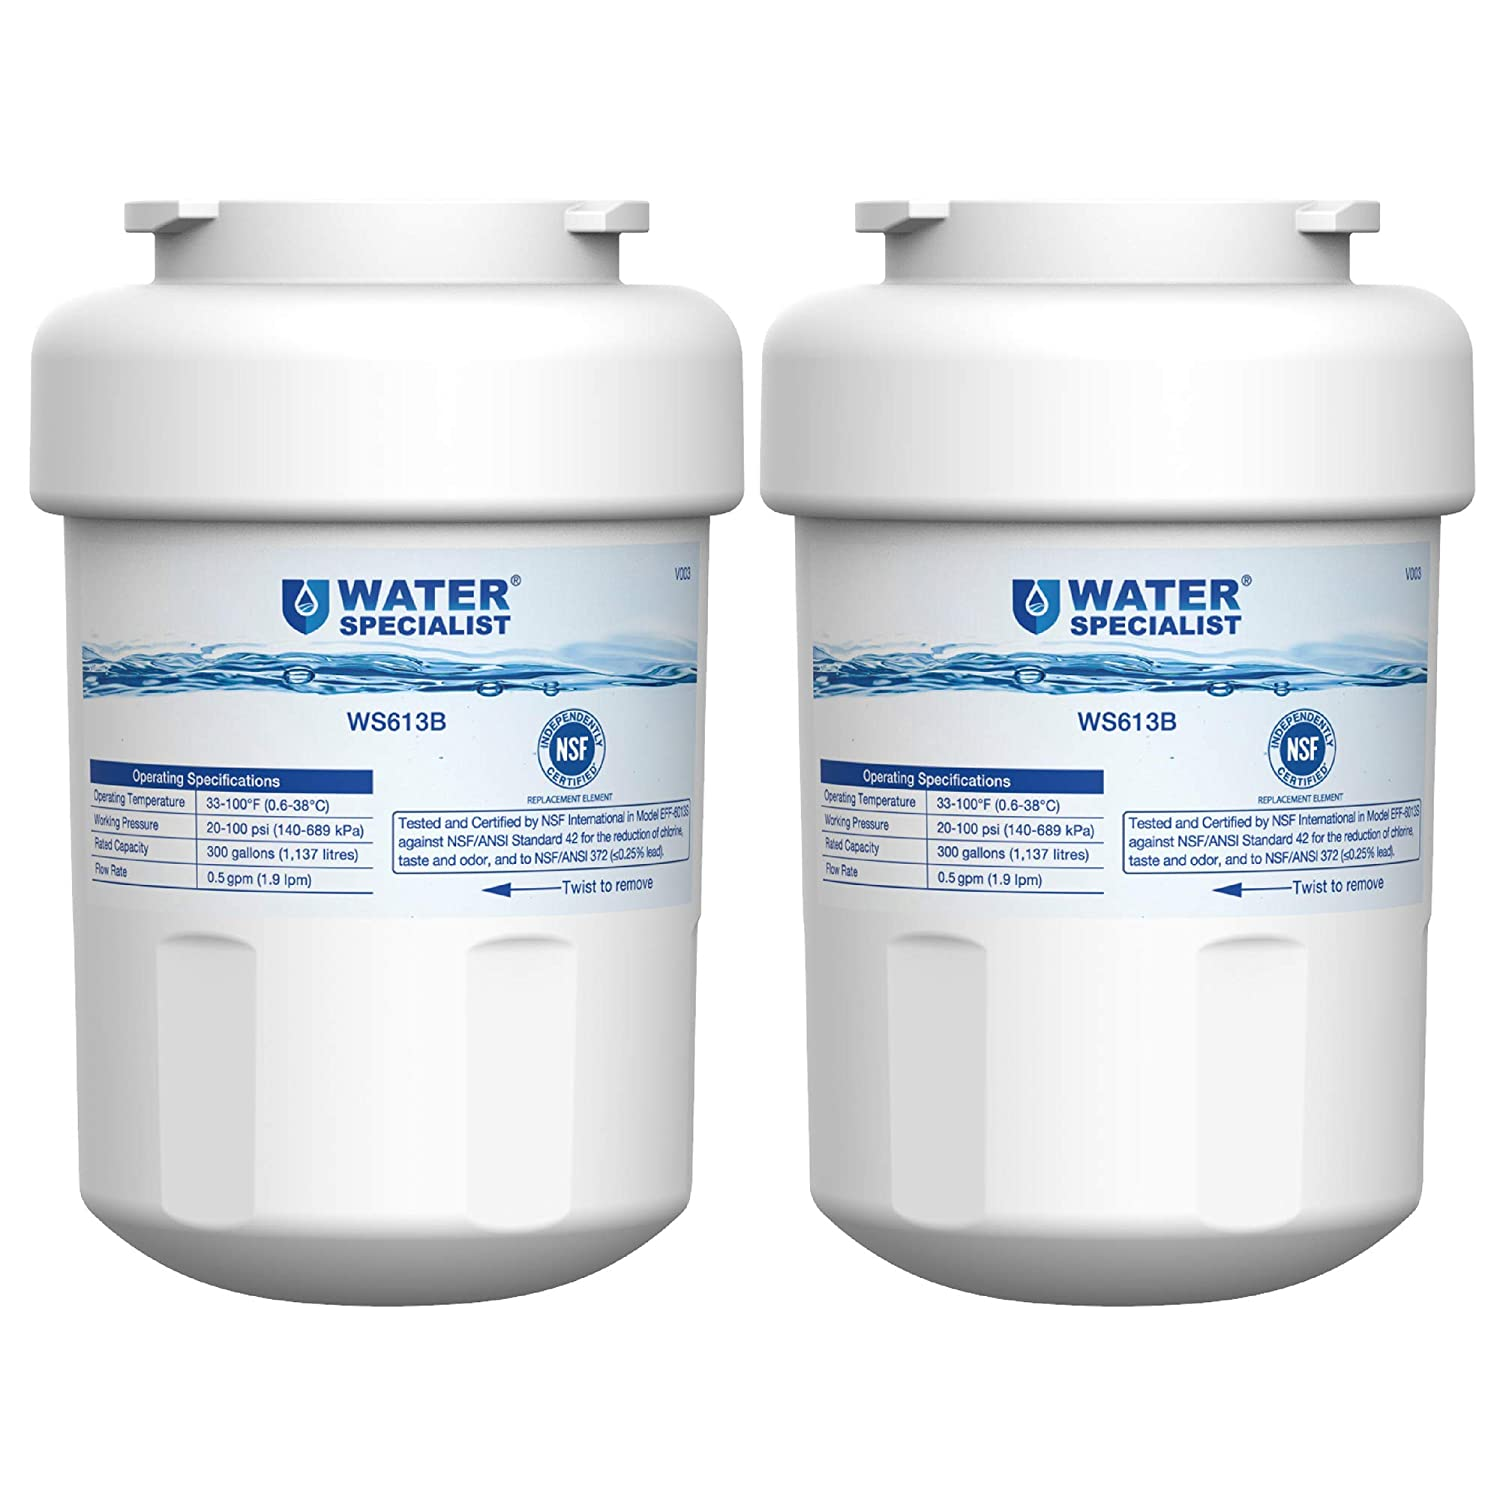 Waterspecialist MWF Refrigerator Water Filter, Replacement for GE SmartWater MWFP, MWFA, GWF, HDX FMG-1, WFC1201, GSE25GSHECSS, PC75009, RWF1060, 197D6321P006 (Pack of 2)